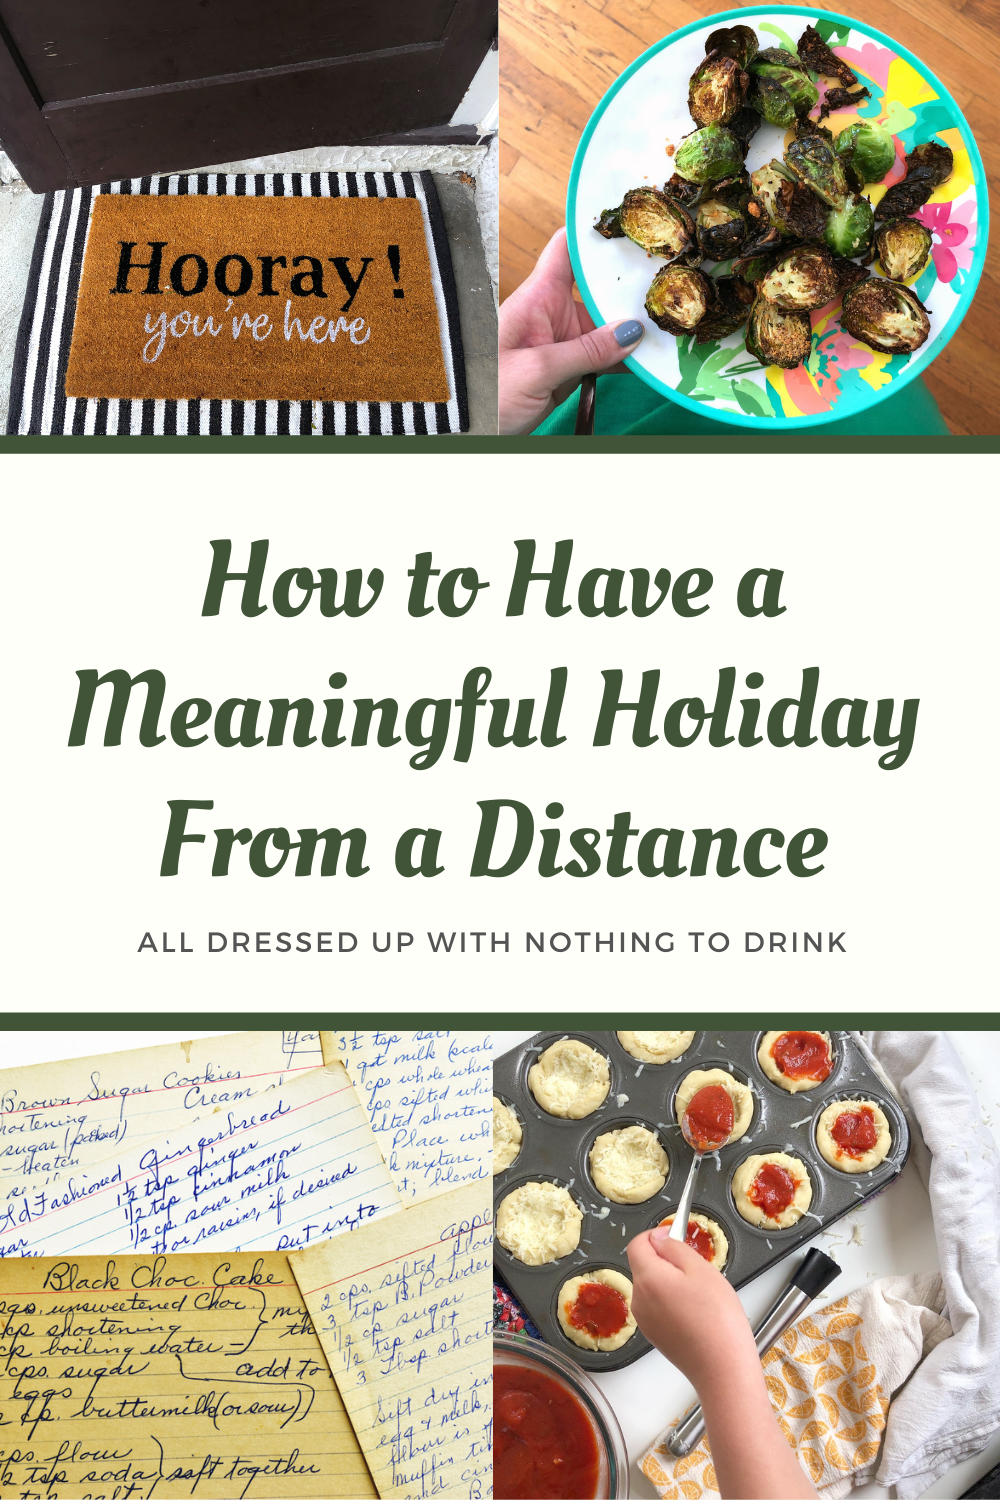 How to have a meaningful holiday from a distance